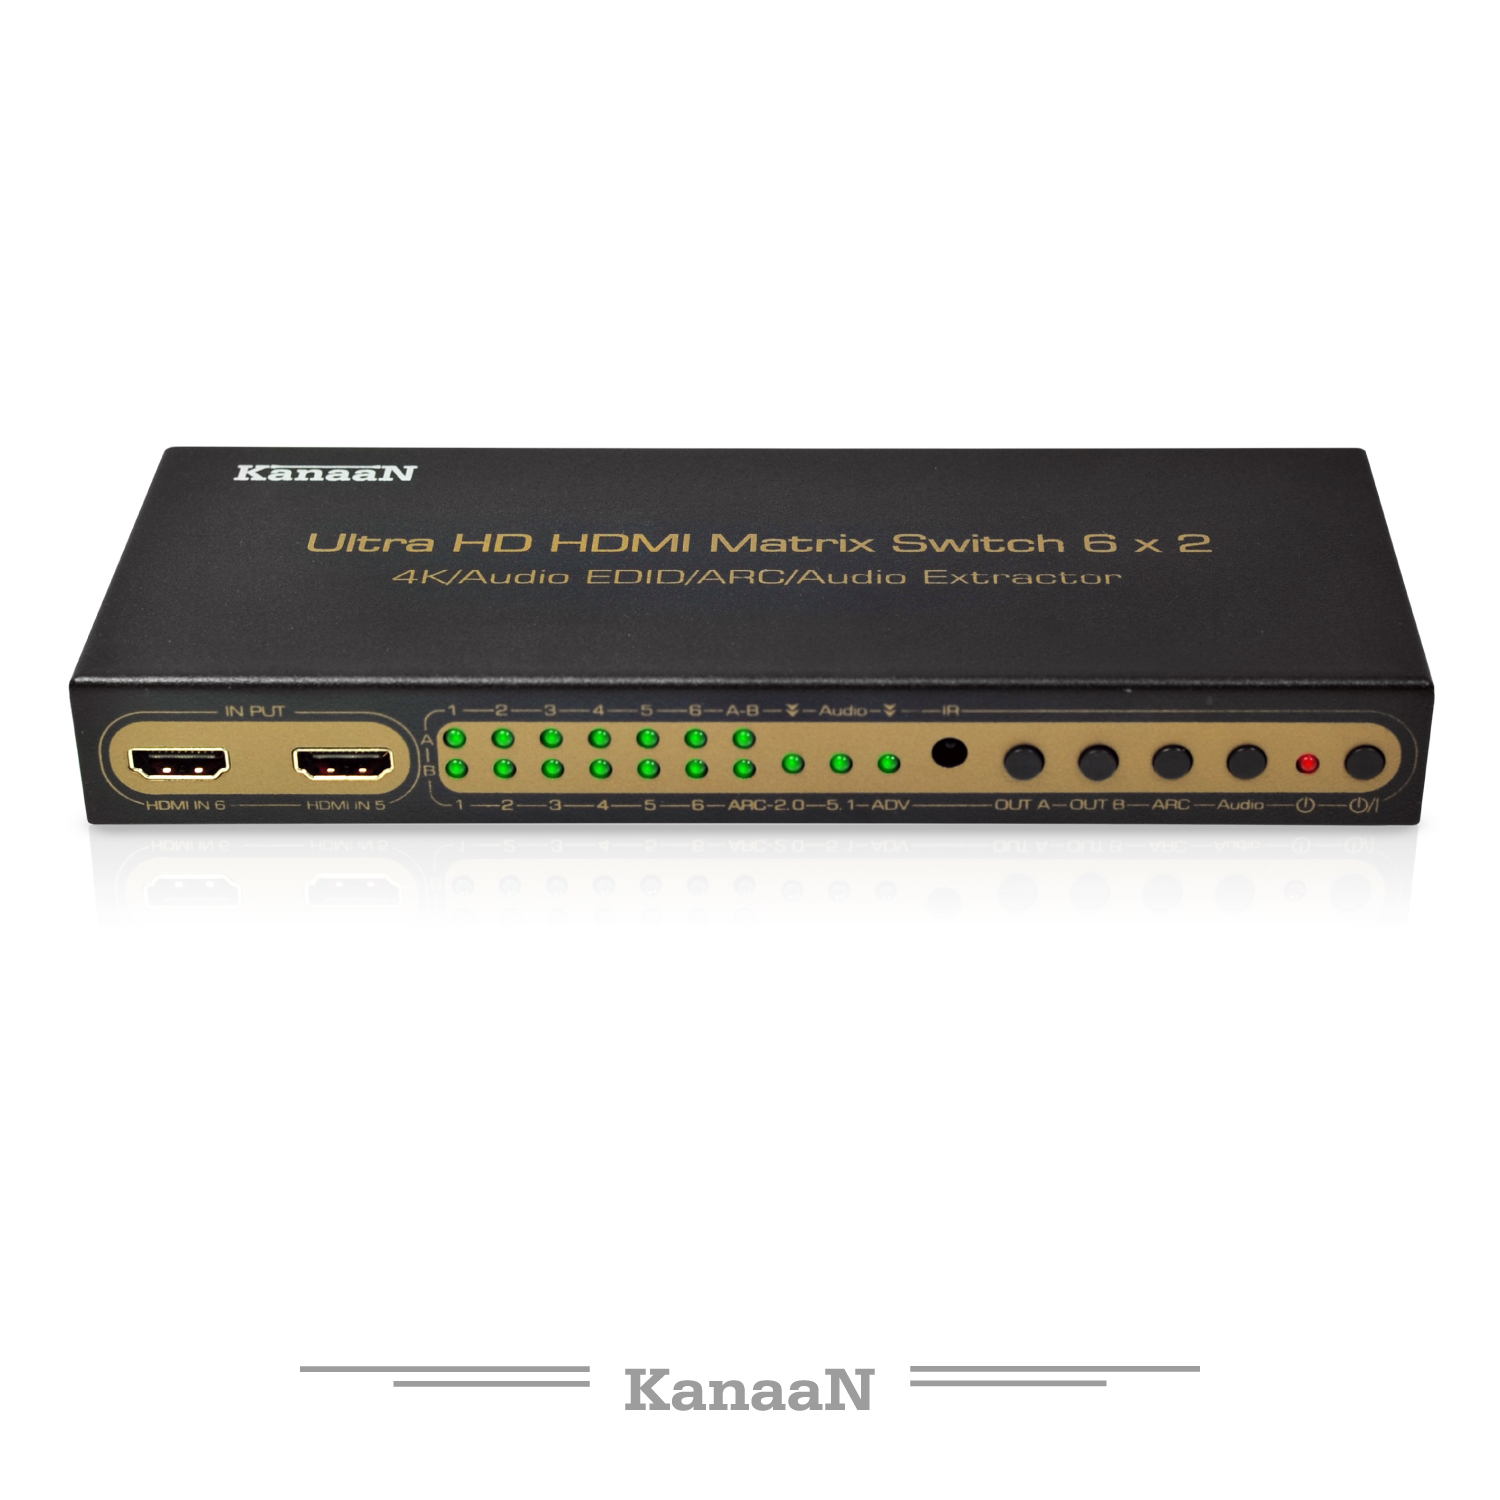 Leicke | KanaaN 4K 6x2 HDMI Matrix Switch Splitter | Remote